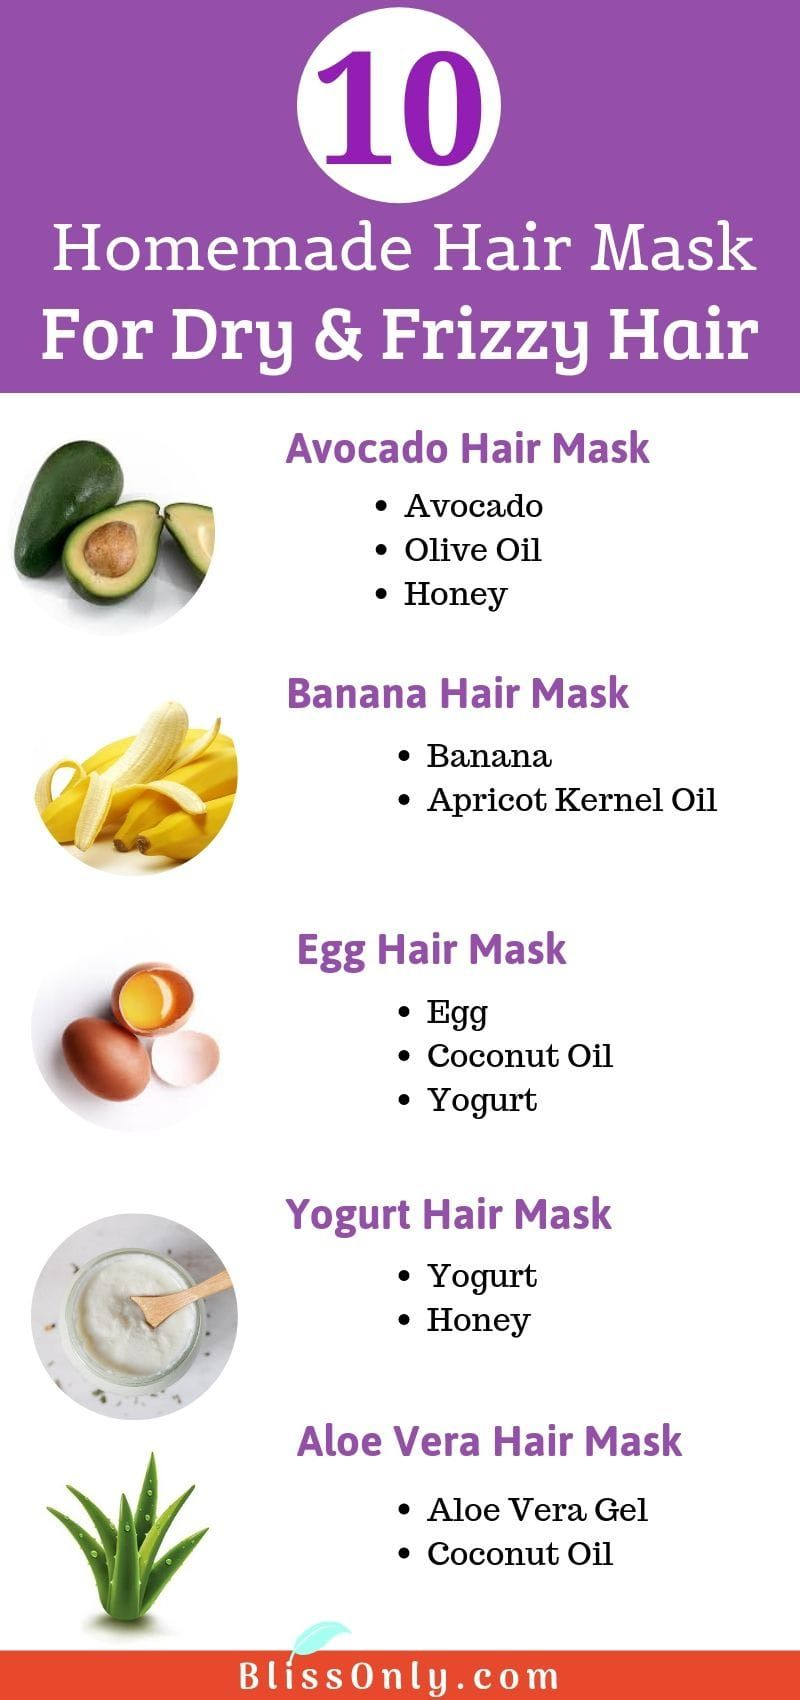 10 Homemade Hair Mask For Frizzy Hair - BlissOnly